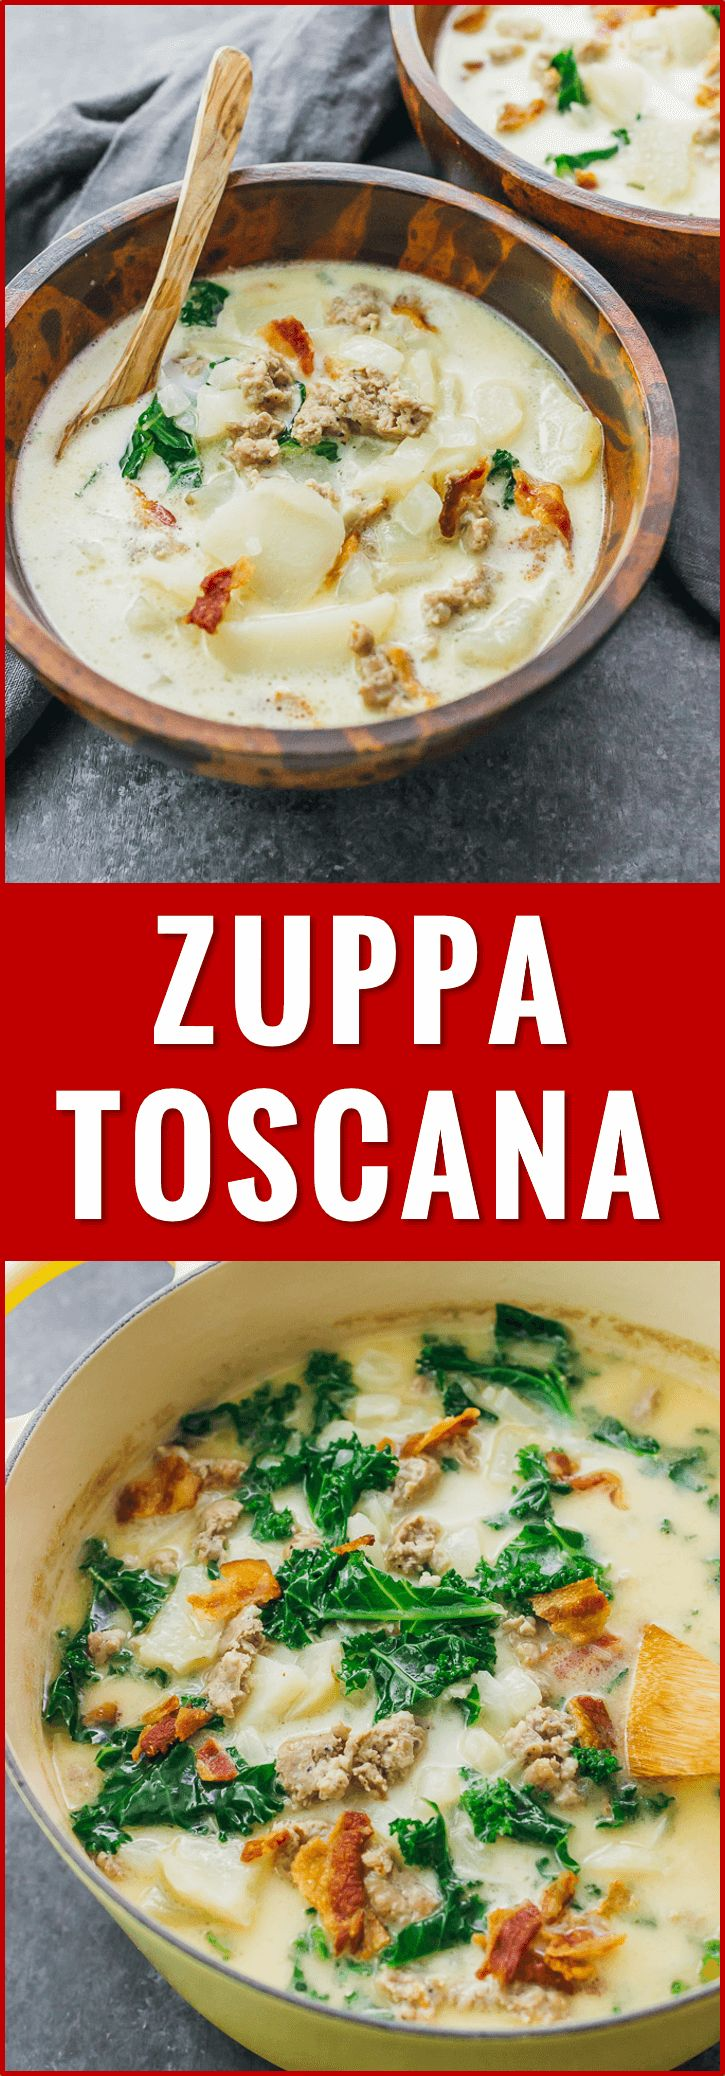 "Zuppa toscana or ""Tuscan soup"" is a comforting Italian soup with kale, potatoes, onions, cream, and garlic. soup olive garden, healthy, recipe, whole 30, low carb, paleo, easy, copycat, stovetop, skinny, best, light, keto, damn delicious, pioneer woman, copy cat, dutch oven, weight watchers, lighter, on stove, authentic, homemade, with bacon, clean, quick, creamy, spicy, simipily, healthier, calories, sausages, dinners, families, love, at home, meals, dishes, bowls, restaurant..."